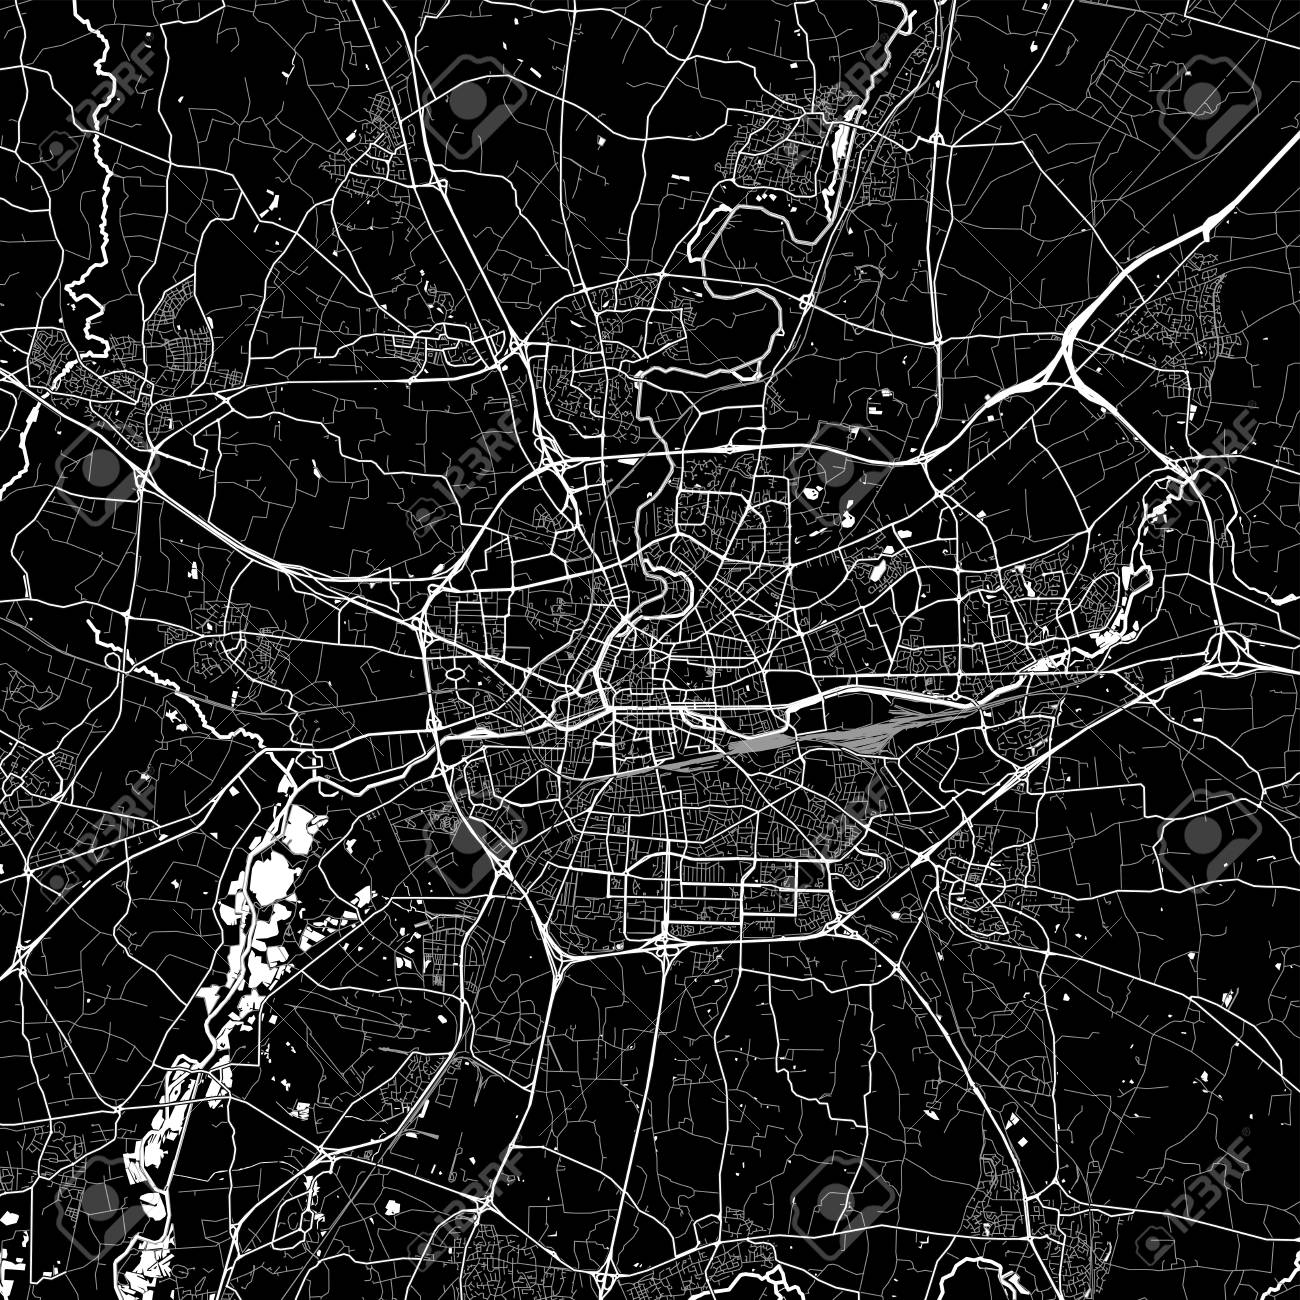 Area Map Of Rennes France Dark Background Version For Infographic